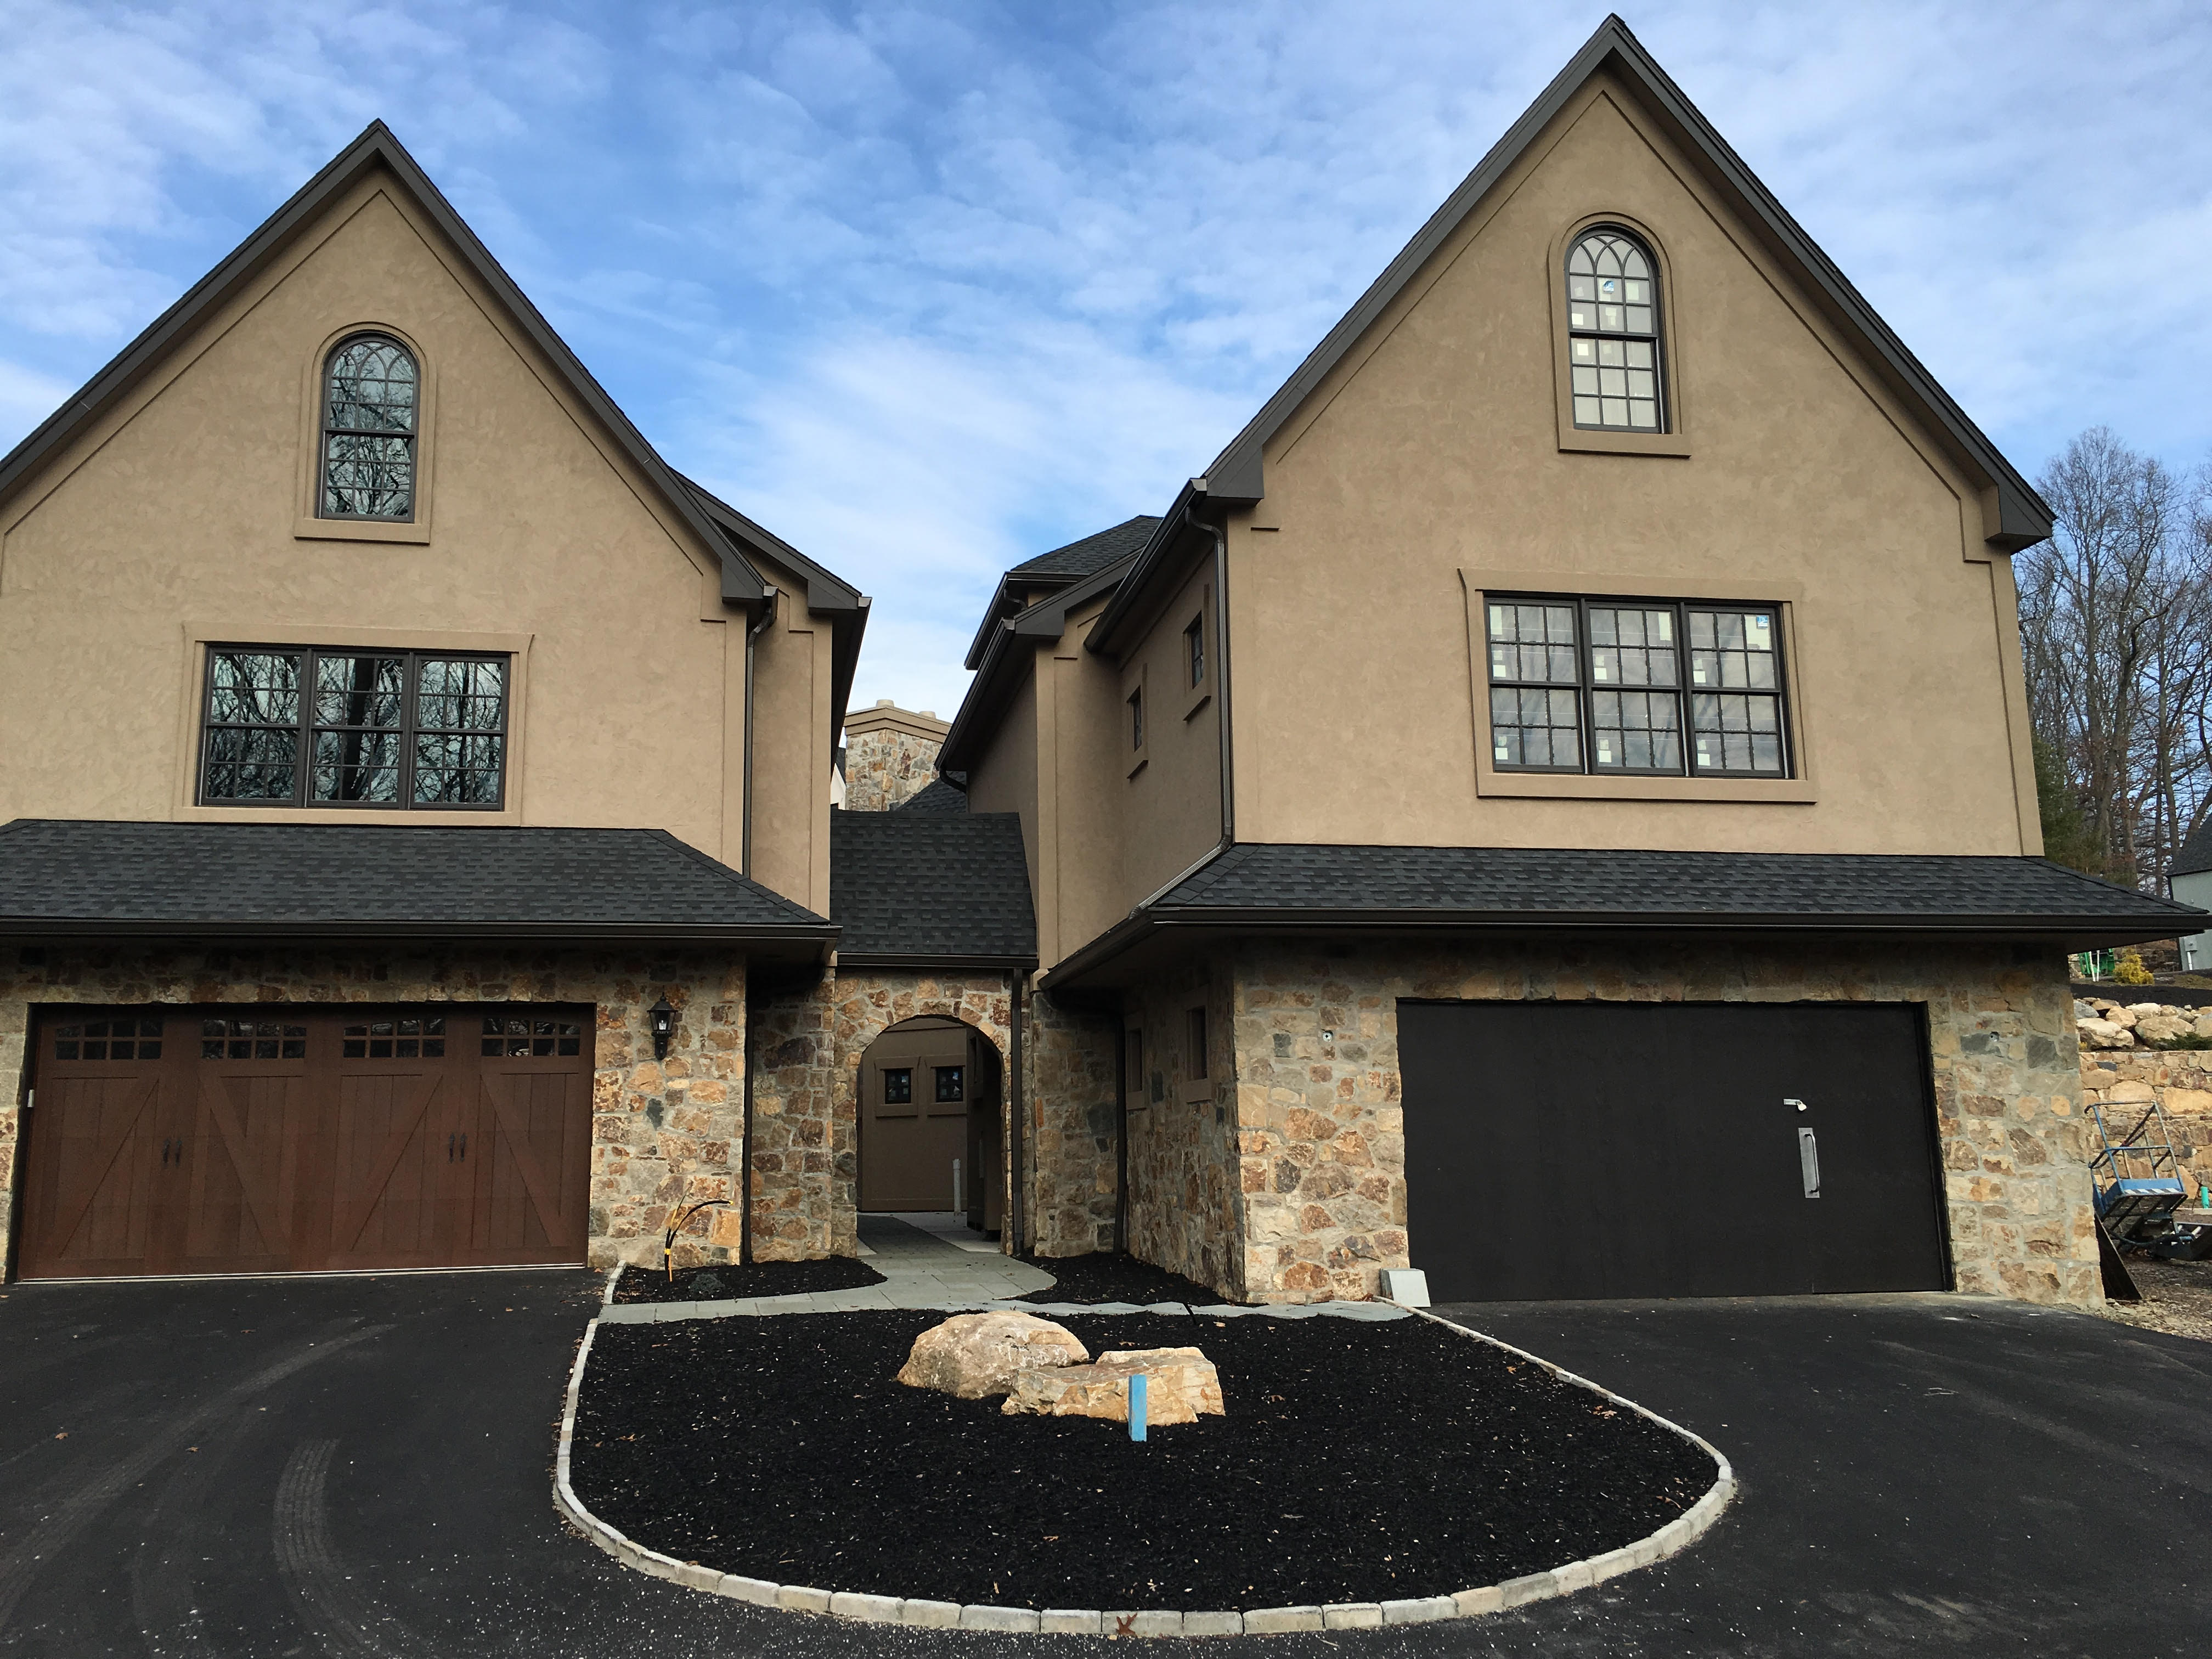 Condominium for Sale at 2620 Boston Post Rd Unit 3 Guilford, Connecticut, 06437 United States